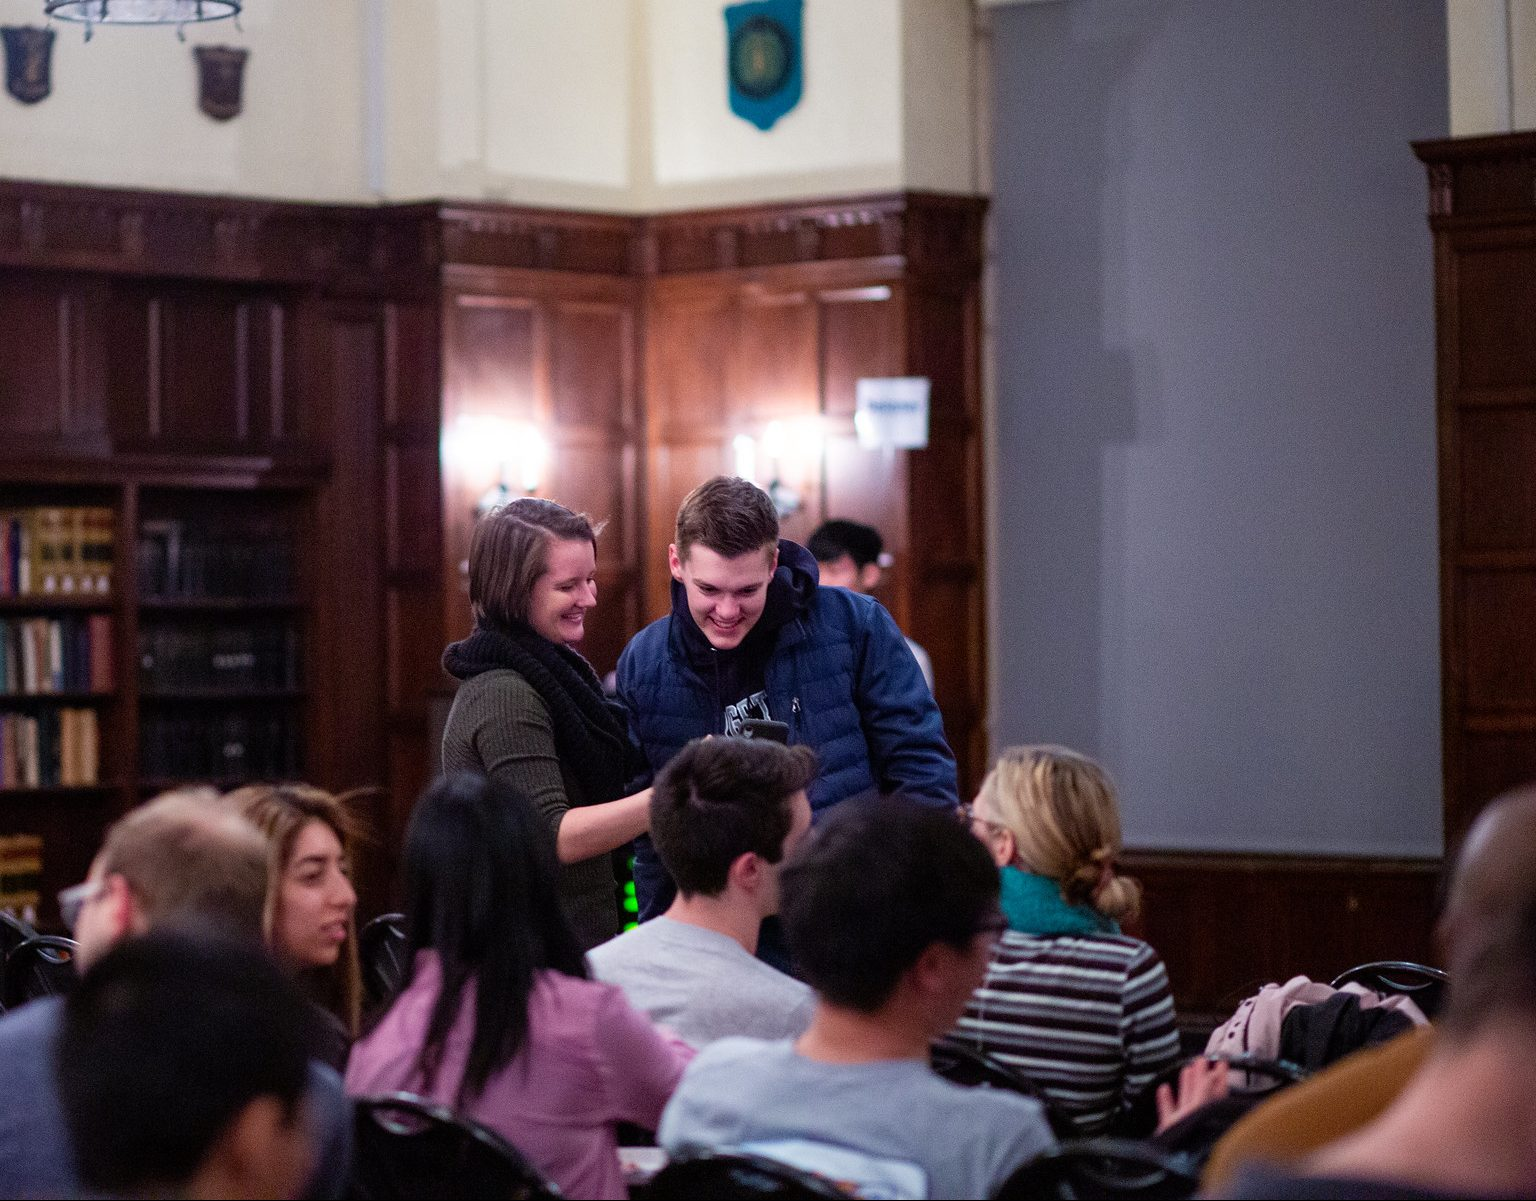 Students in a conversation at an event